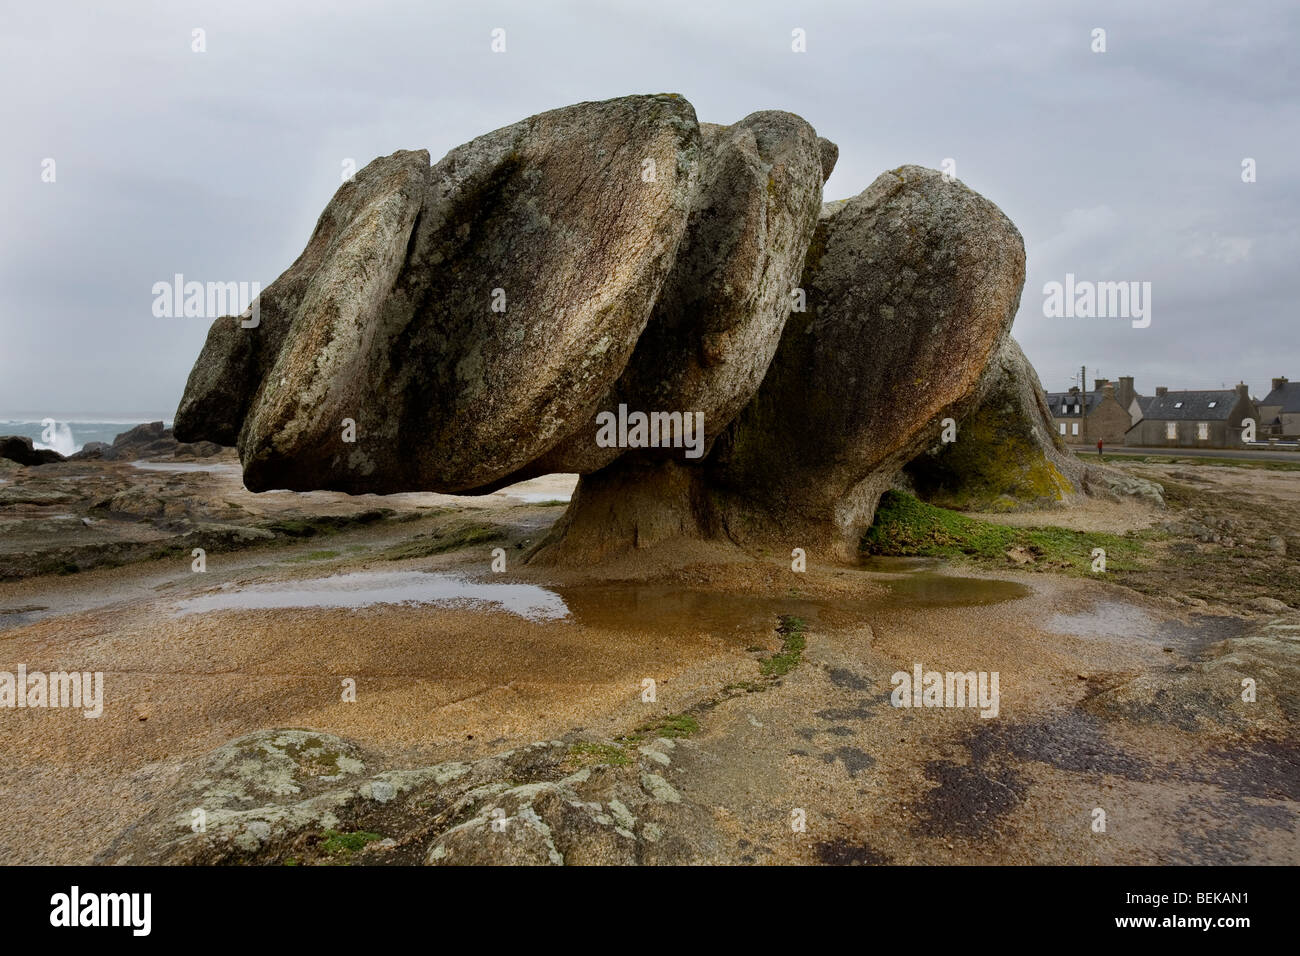 Eroded rock formation by wind erosion at the coast in Saint-Guénolé, Finistère, Brittany, France - Stock Image